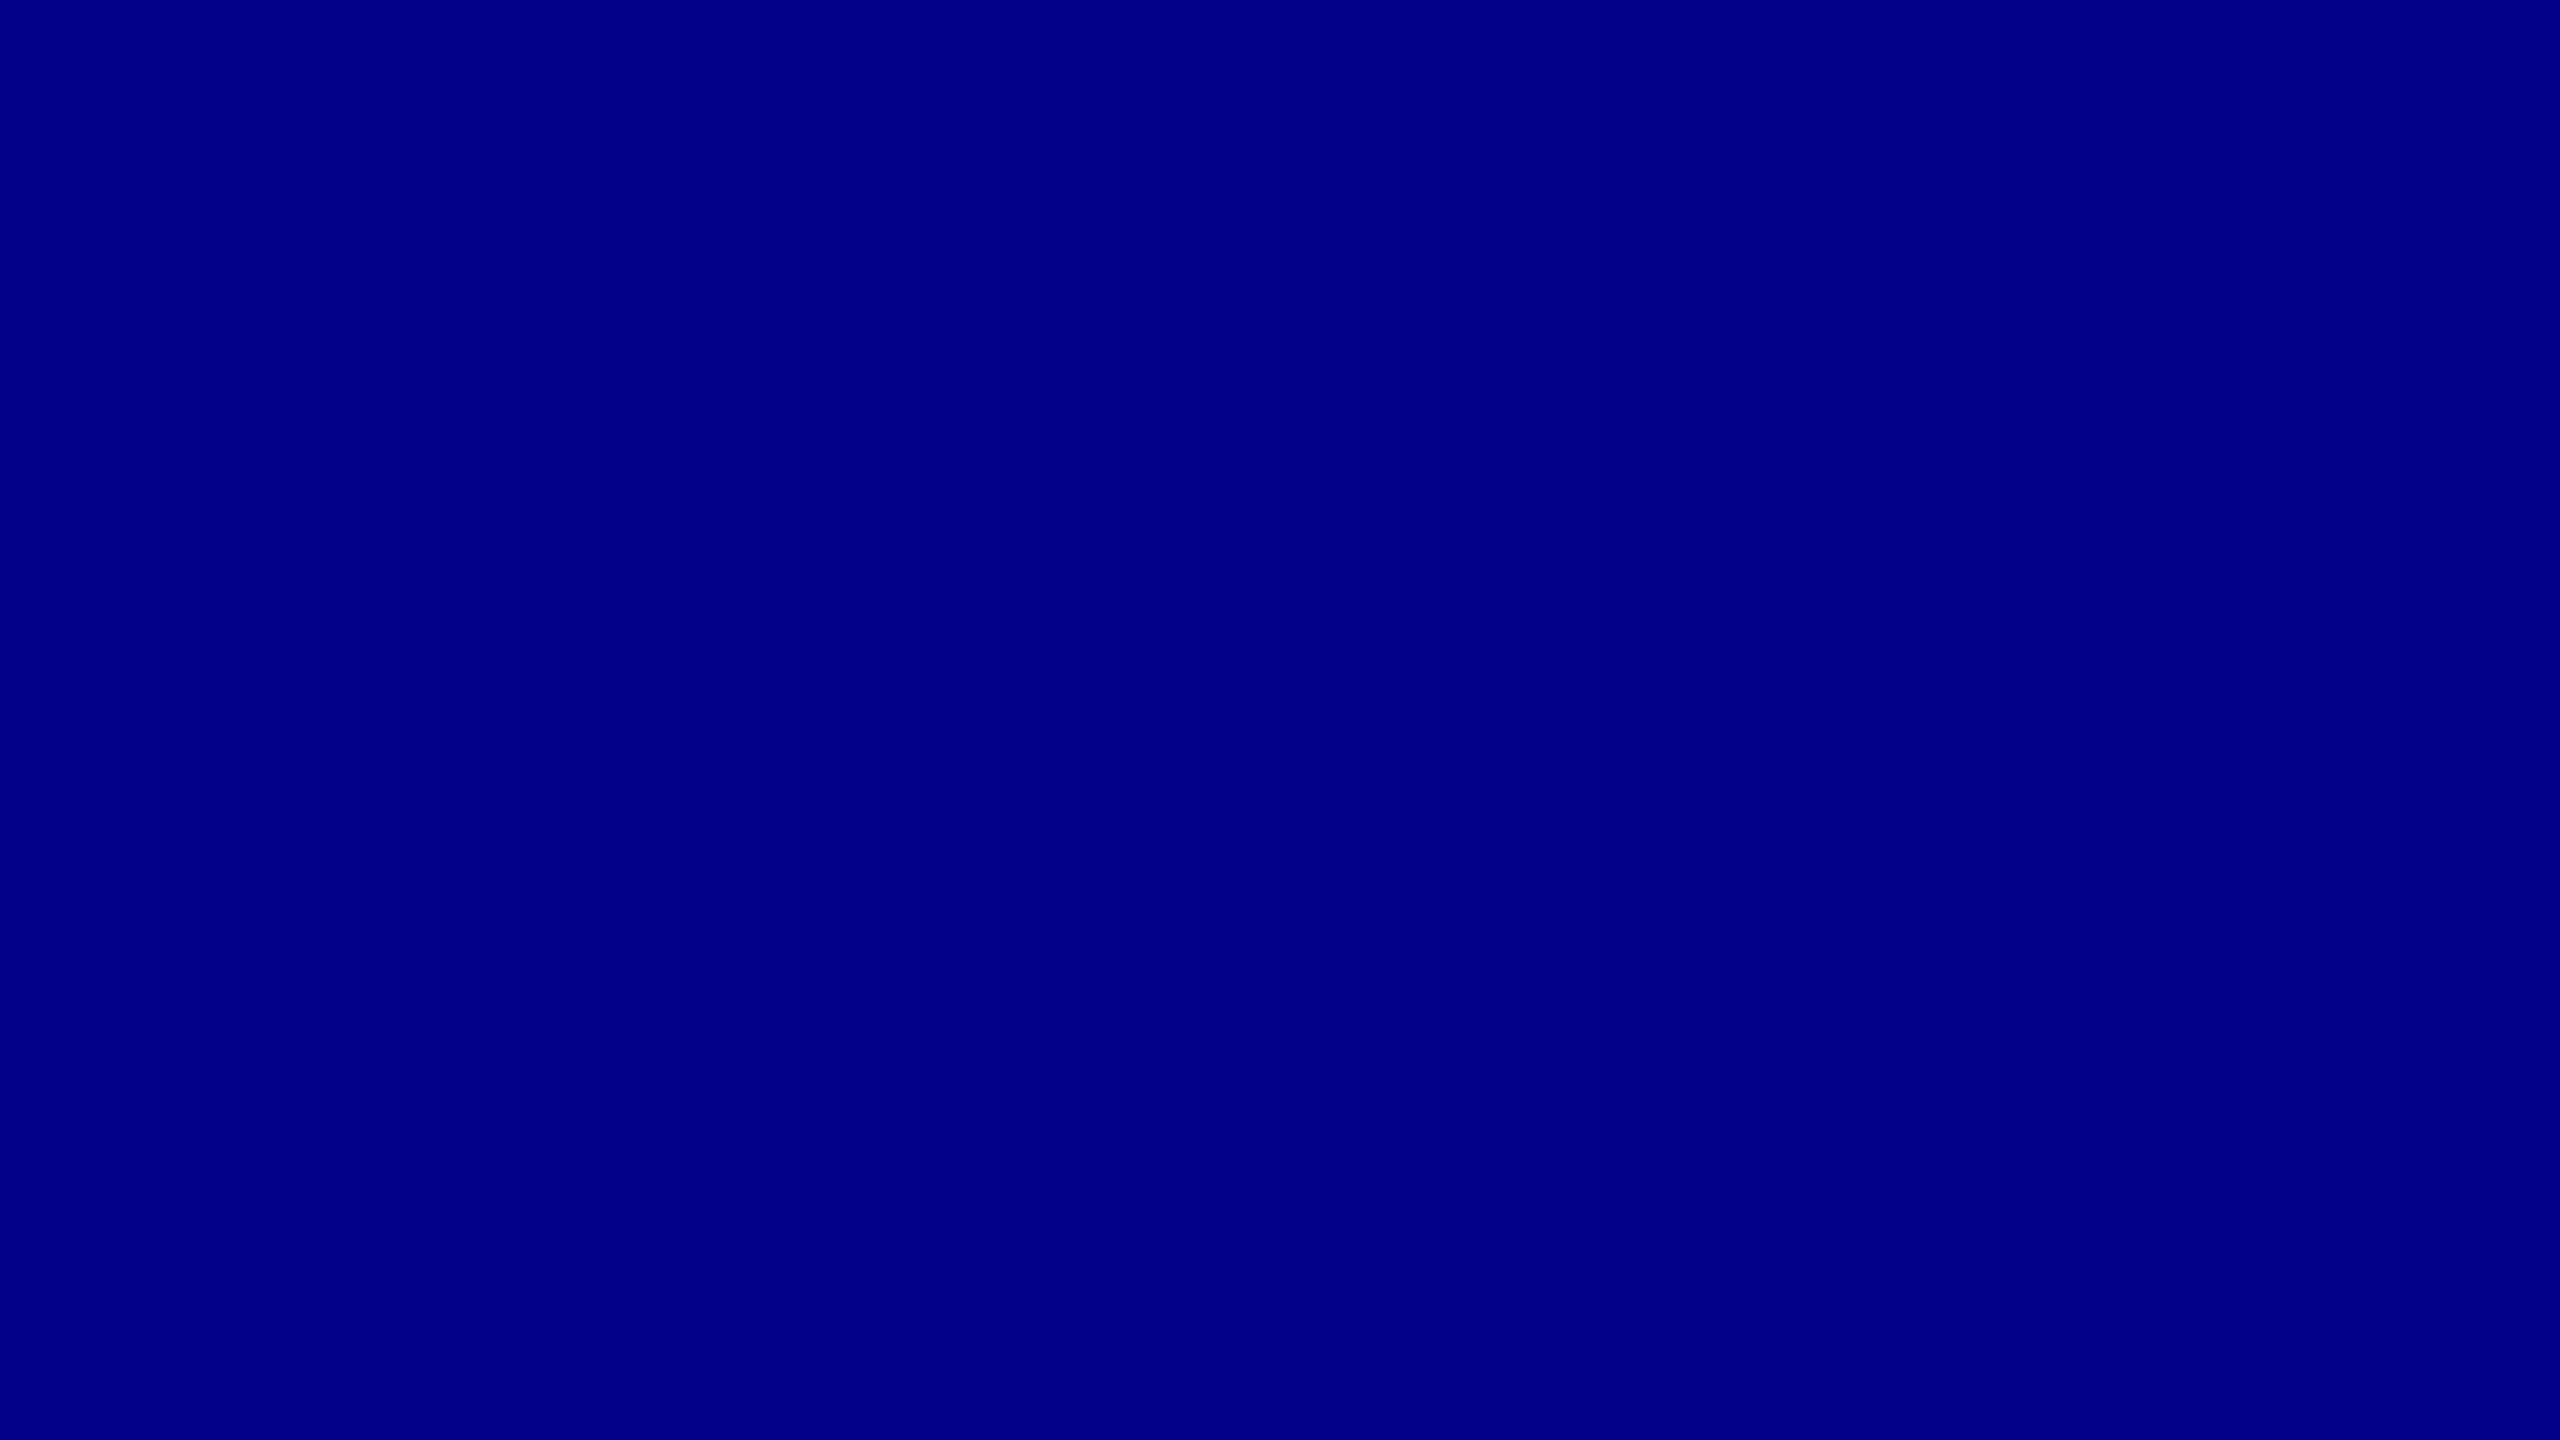 Dark Solid Blue Background Hd Wallpapers Pictures 2560x1440